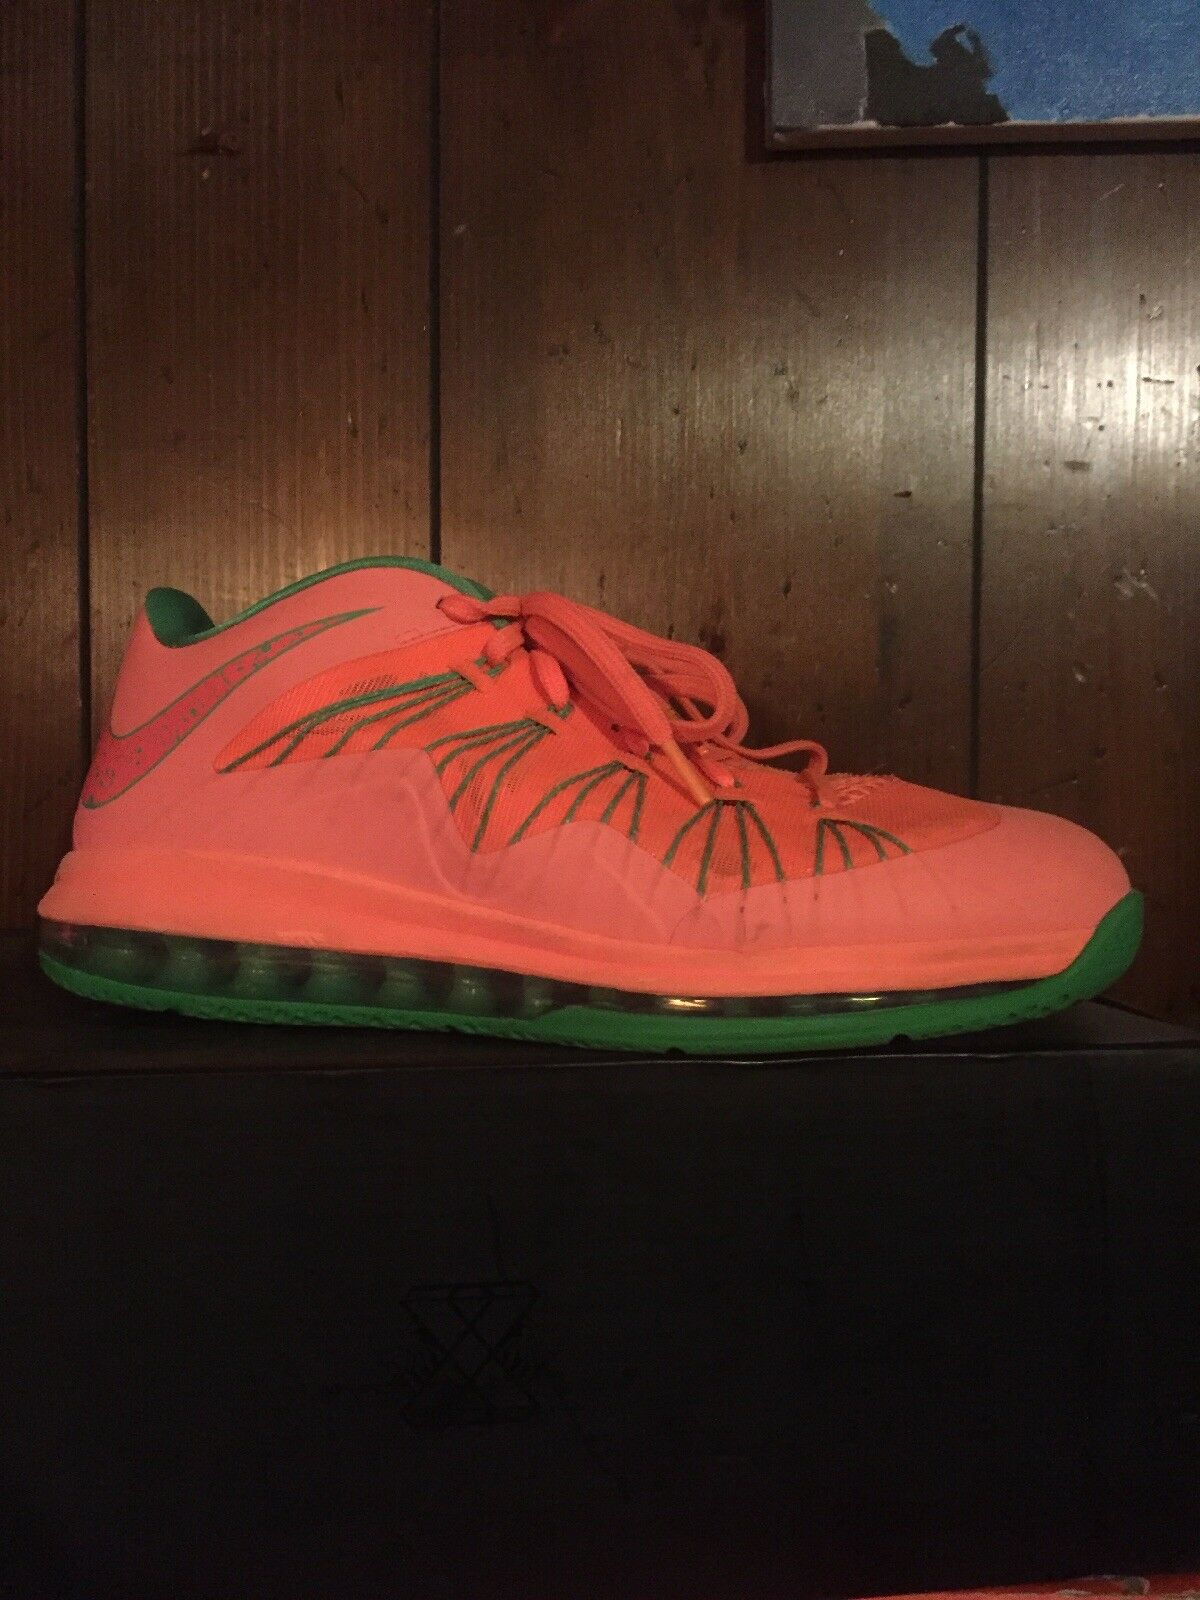 Nike Air Max Lebron X Low Size 11 Watermelon Basketball Shoes And Box GUC